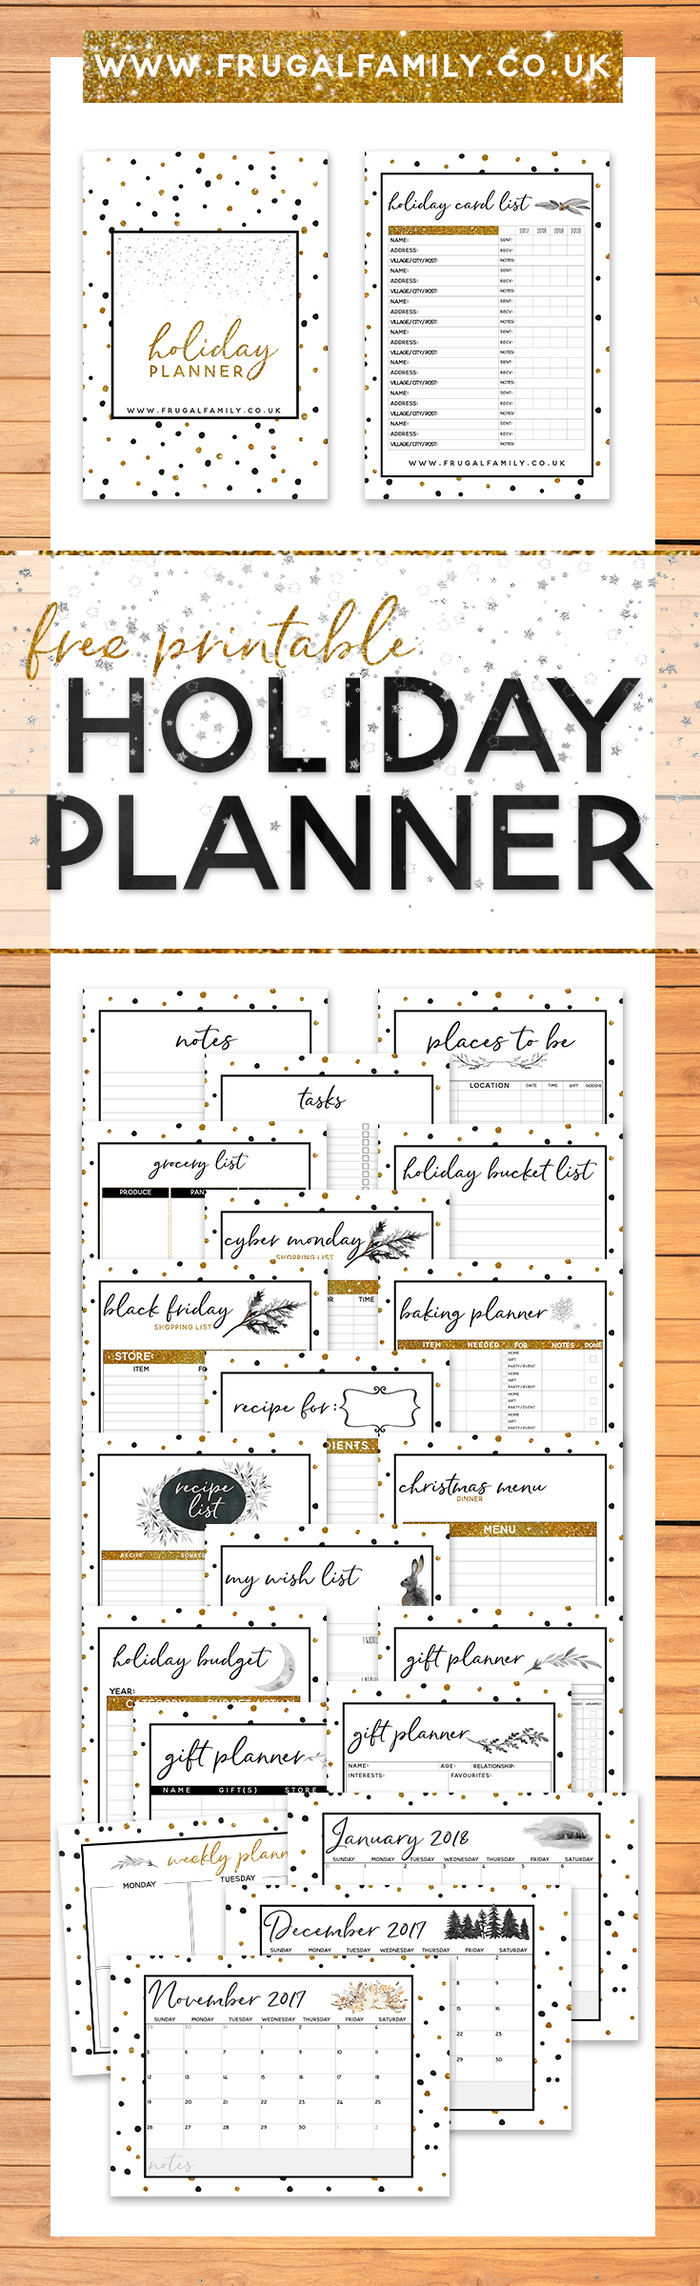 I'm going to be super nice and help you to have an amazingly organised Christmas by sharing my amazing FREE Christmas planner printable with you all!There's everything from Christmas gift buying lists to Christmas budgets and from Christmas meal planning to Christmas calendars.Can you afford not to take advantage of this Completely FREE Christmas Planner Printable launched today!#freeprintable #christmasplanner